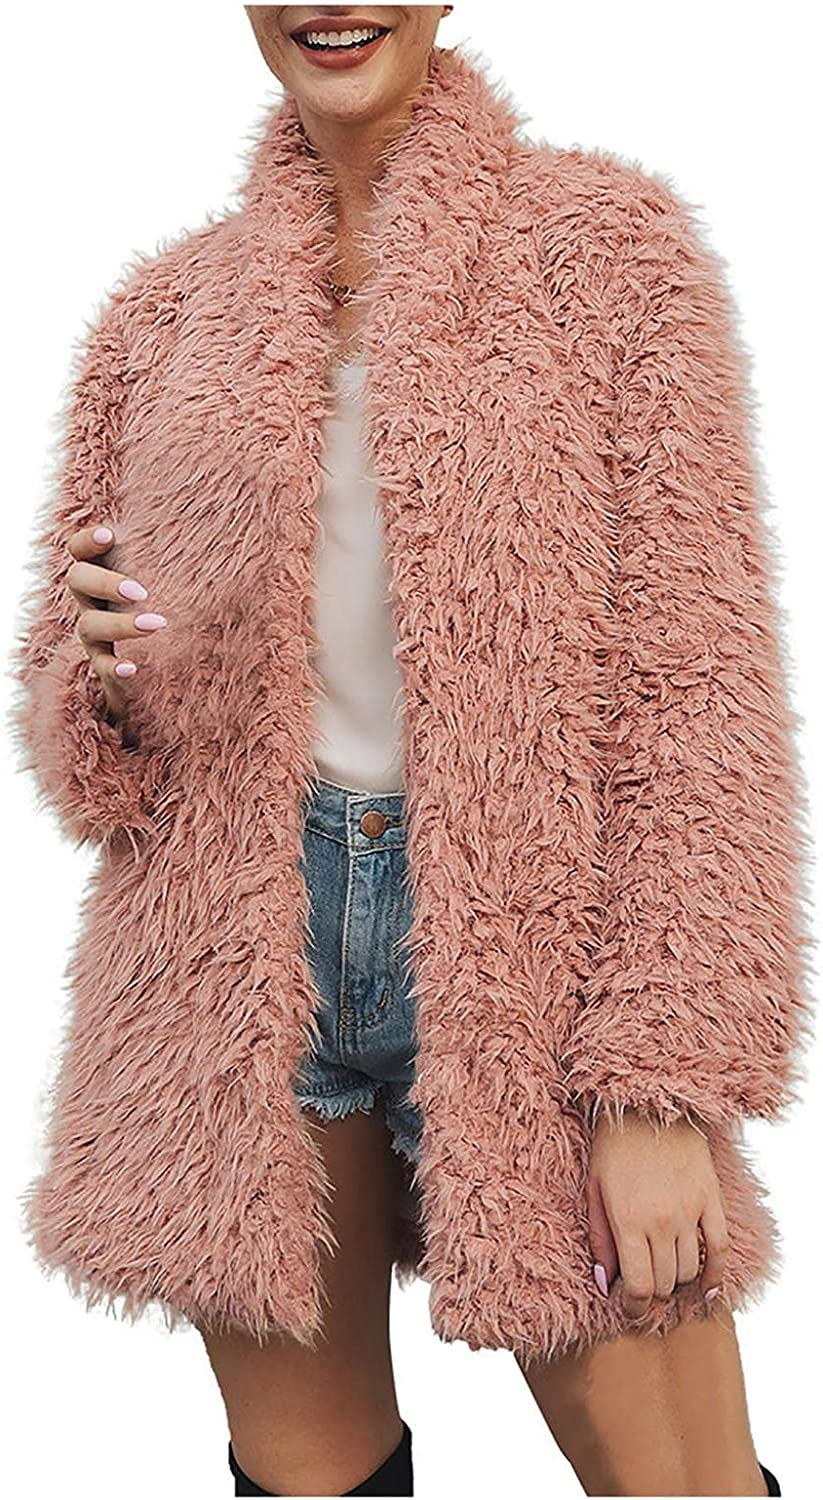 Smileyth Womens Faux Plush Coat - Casual Solid Long Sleeve Lapel Open Front Cardigan Warm Jacket Outerwear